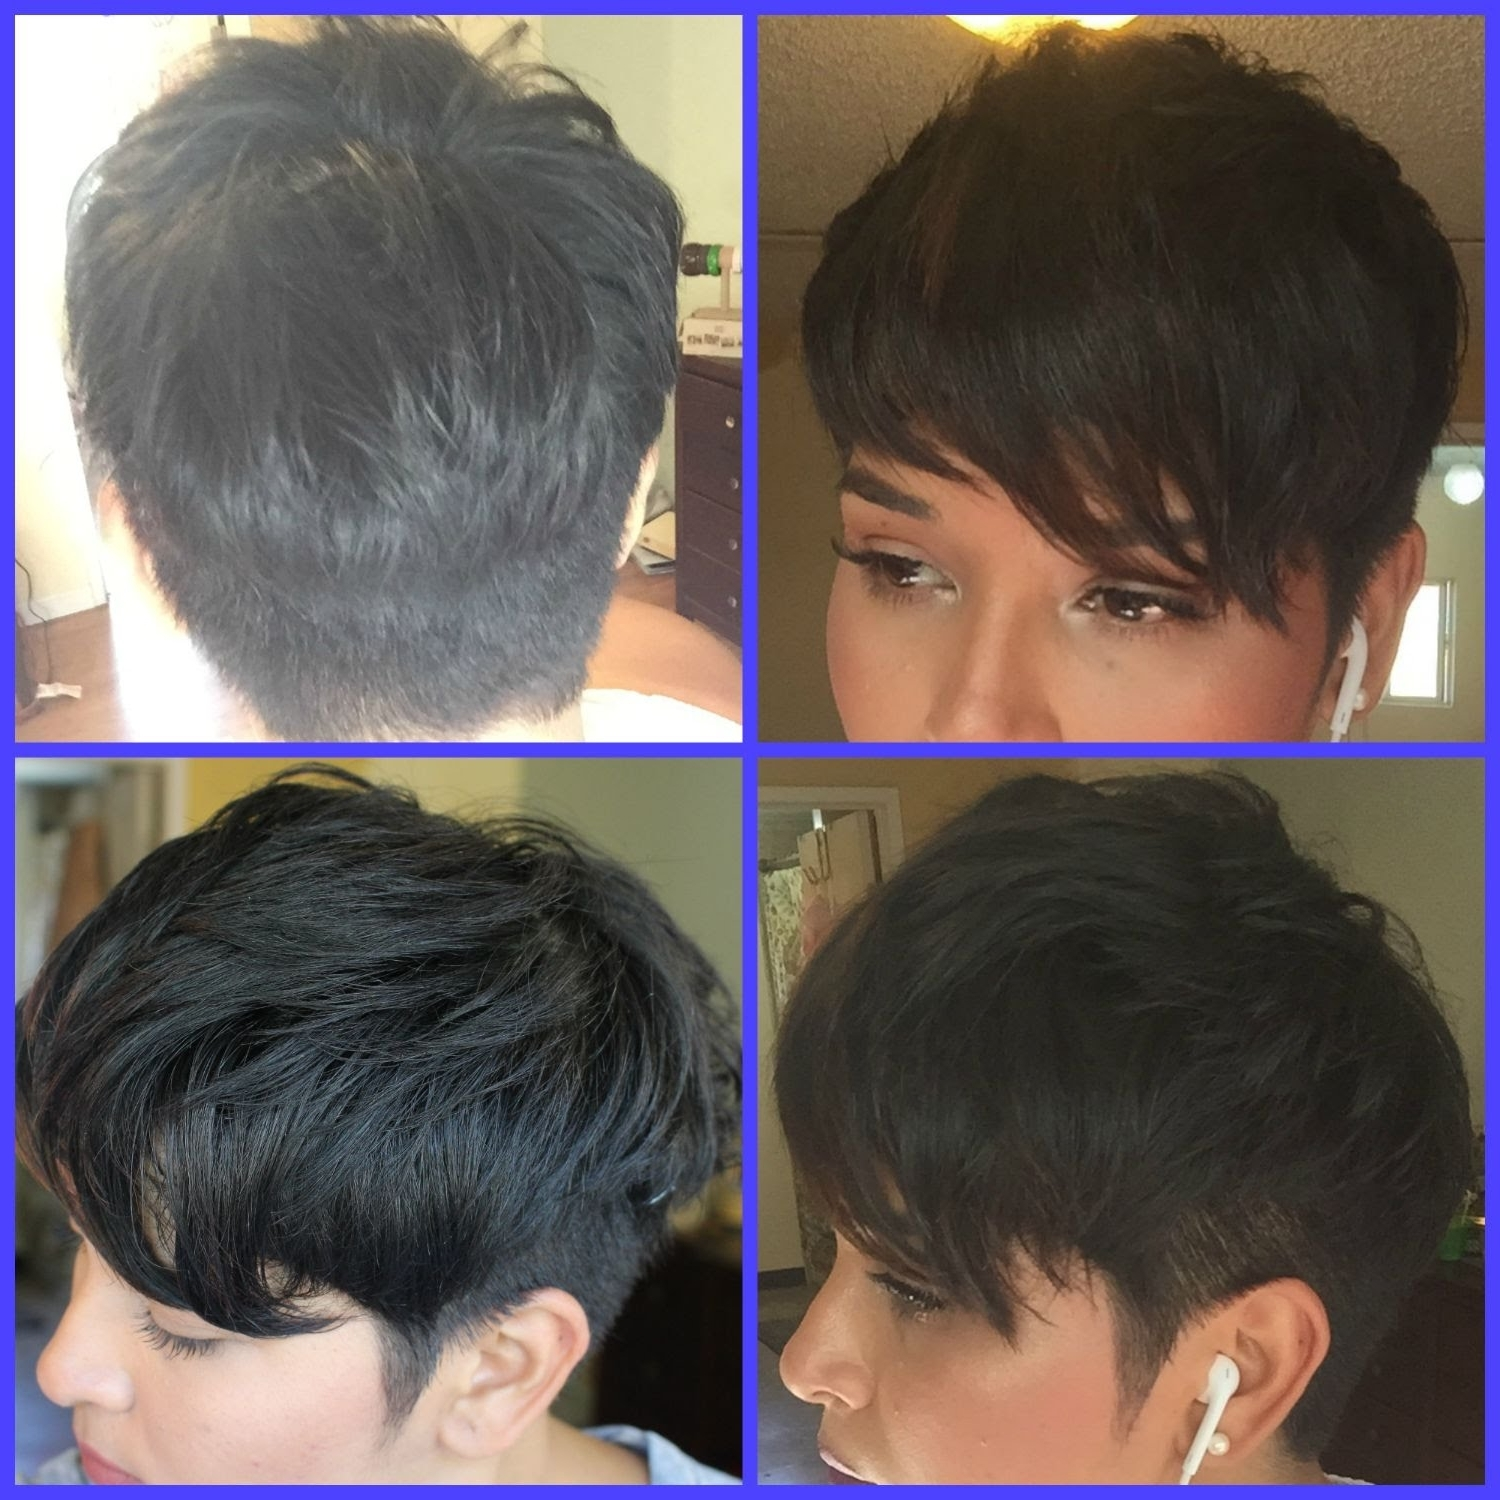 About My Pixie Haircut For Thick Hair The Pixie Diaries – Youtube Within Newest Pixie Hairstyles For Thick Coarse Hair (View 4 of 16)